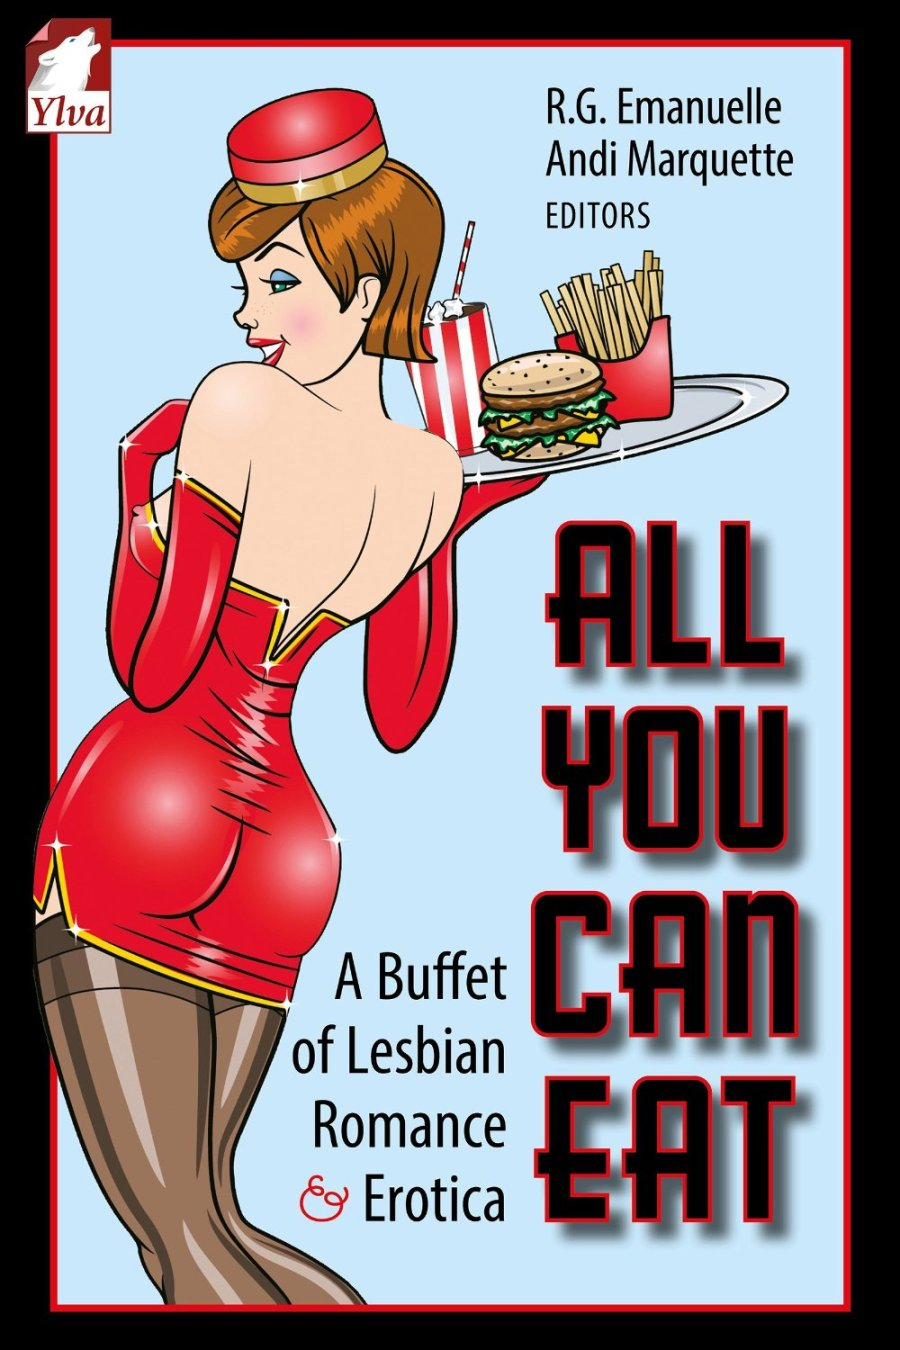 All You Can Eat – A Buffet of Lesbian Romance &Erotica